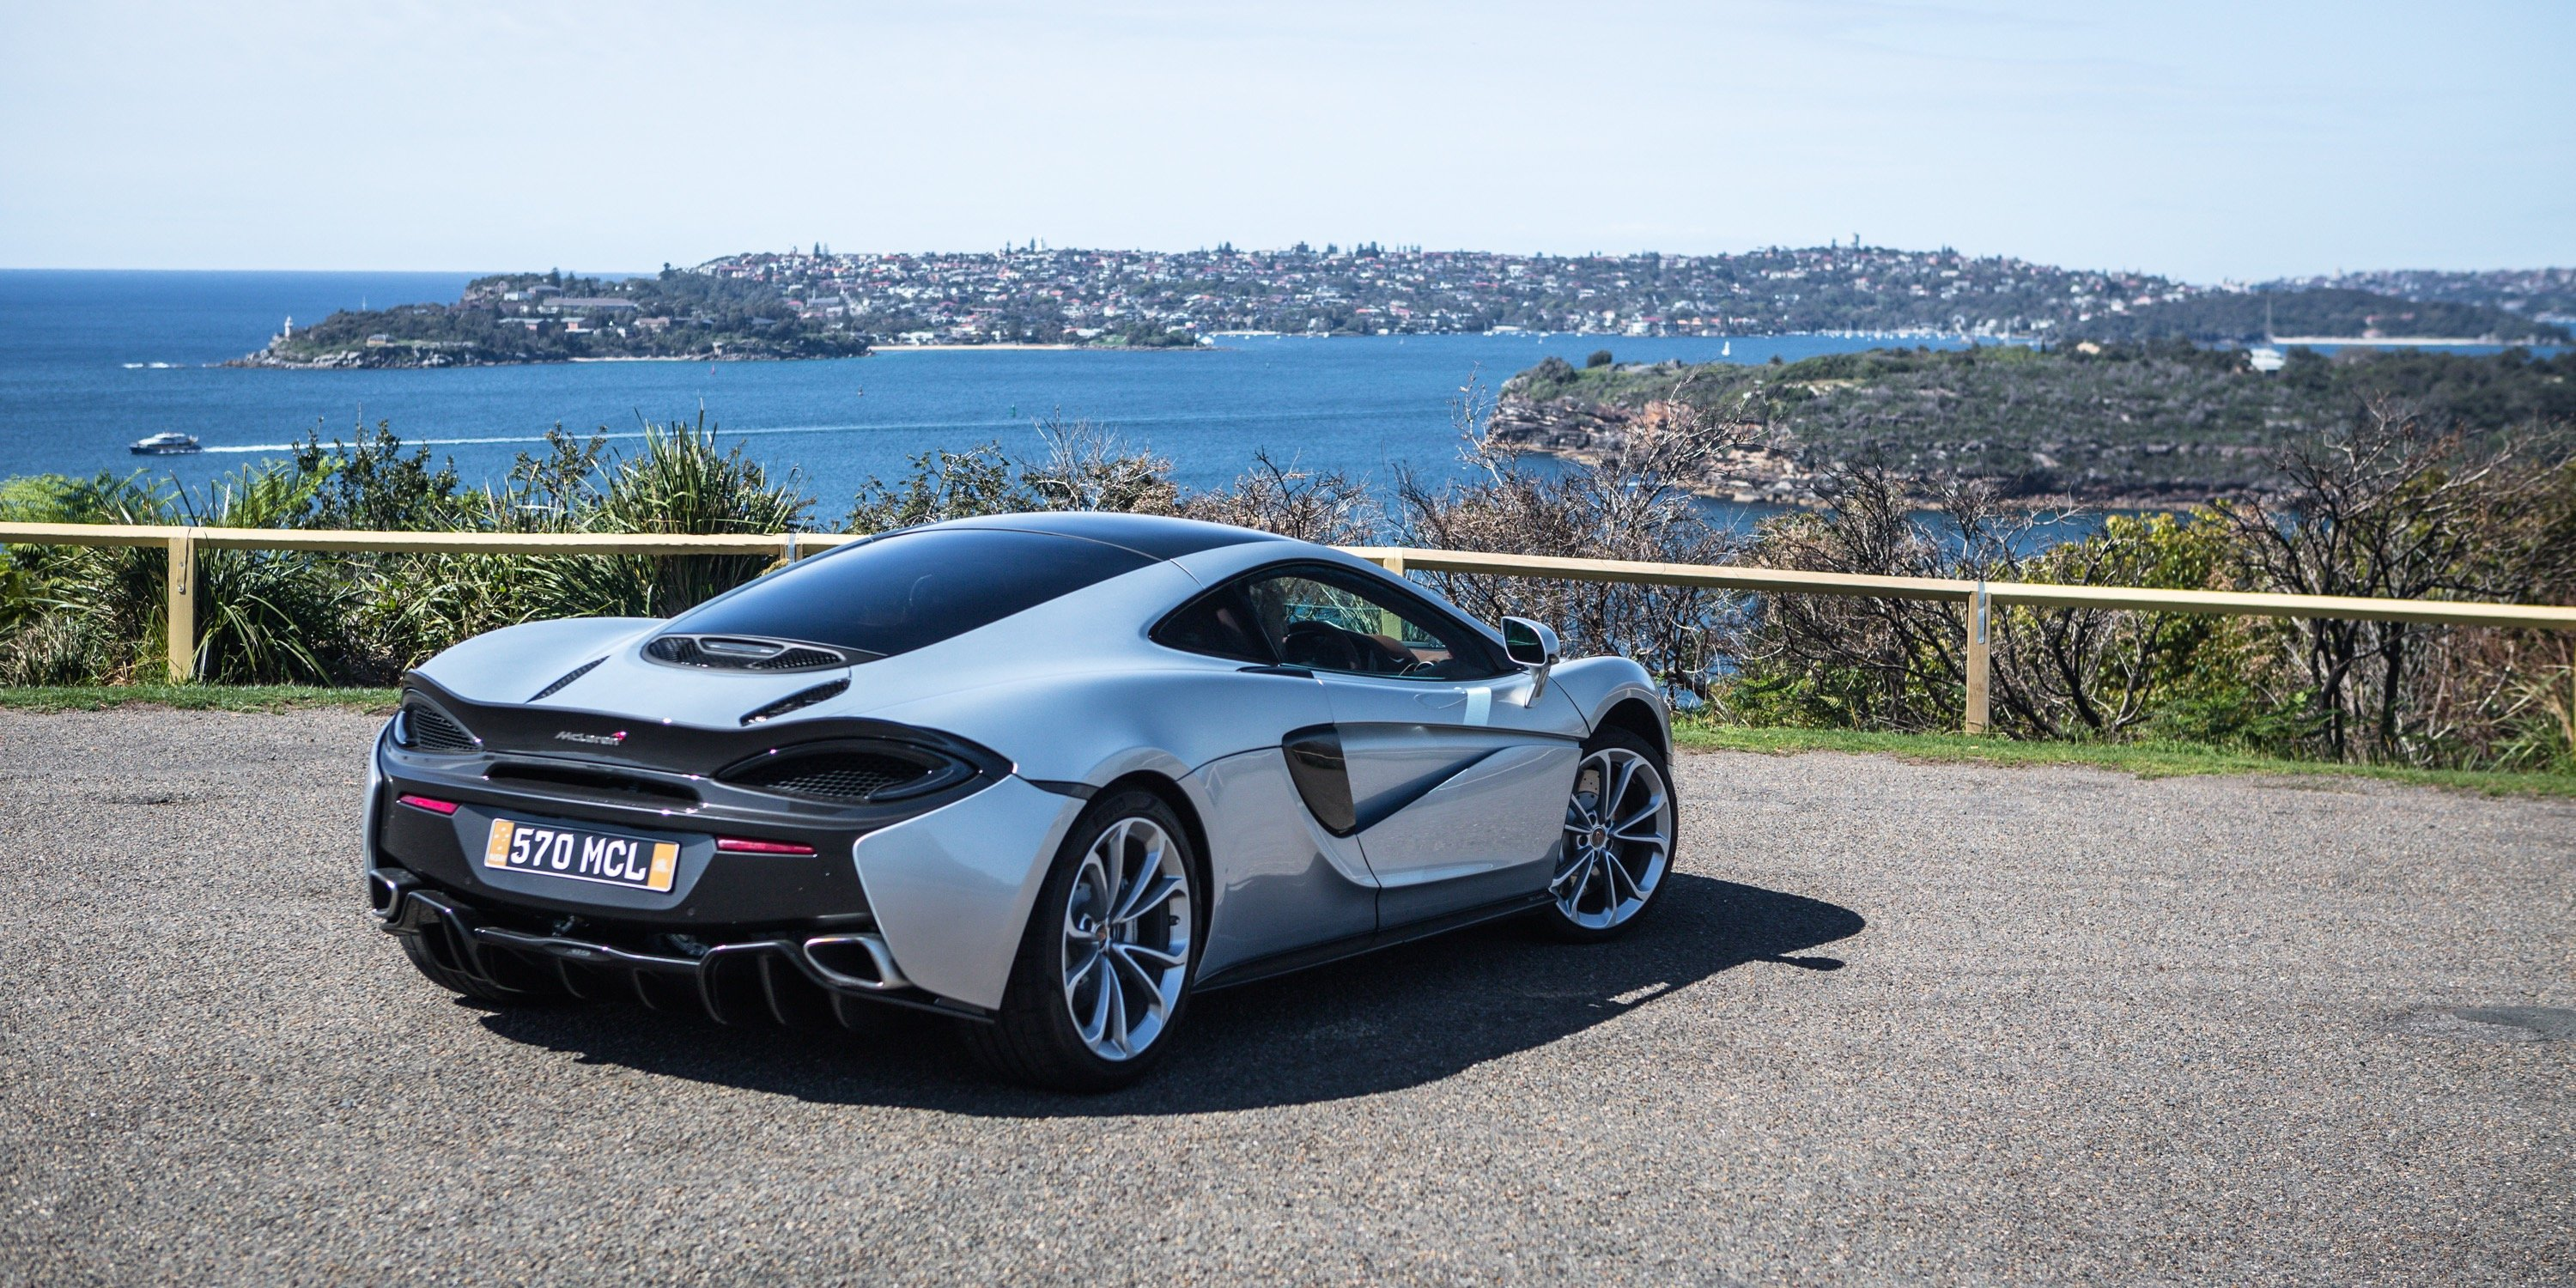 2017 Mclaren 570gt Review Caradvice